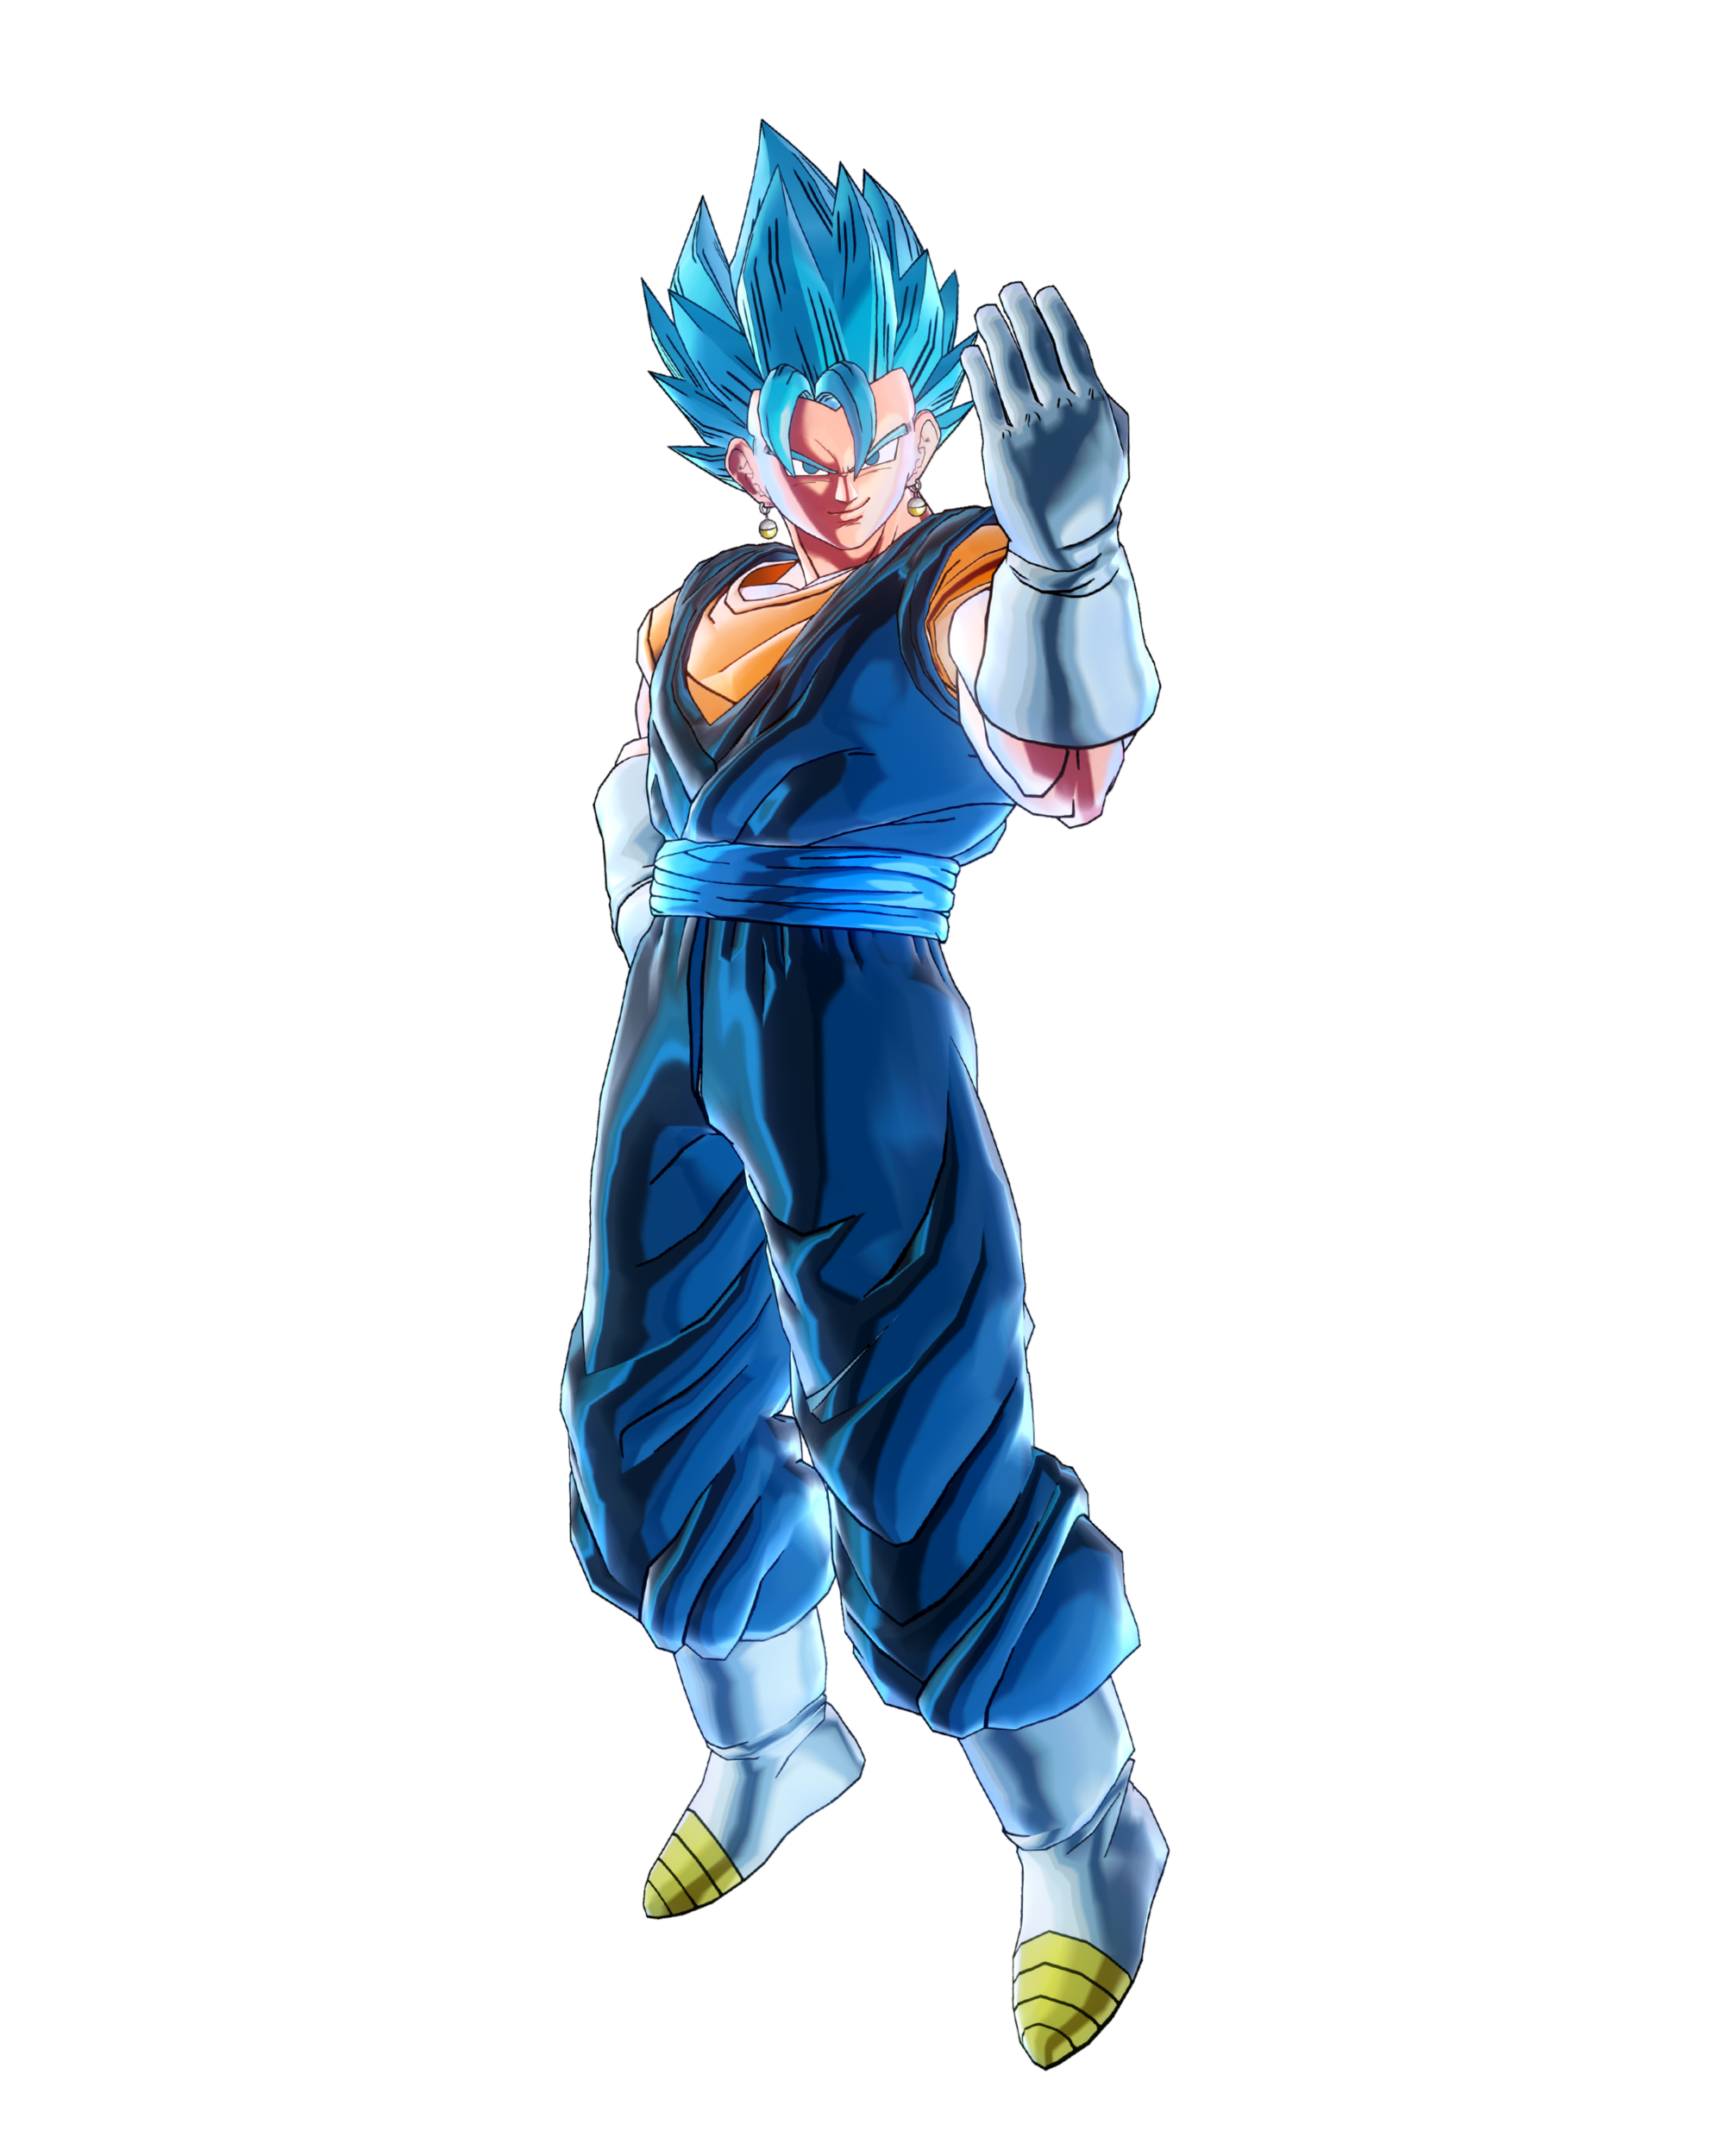 Dragon Ball Xenoverse 2 character